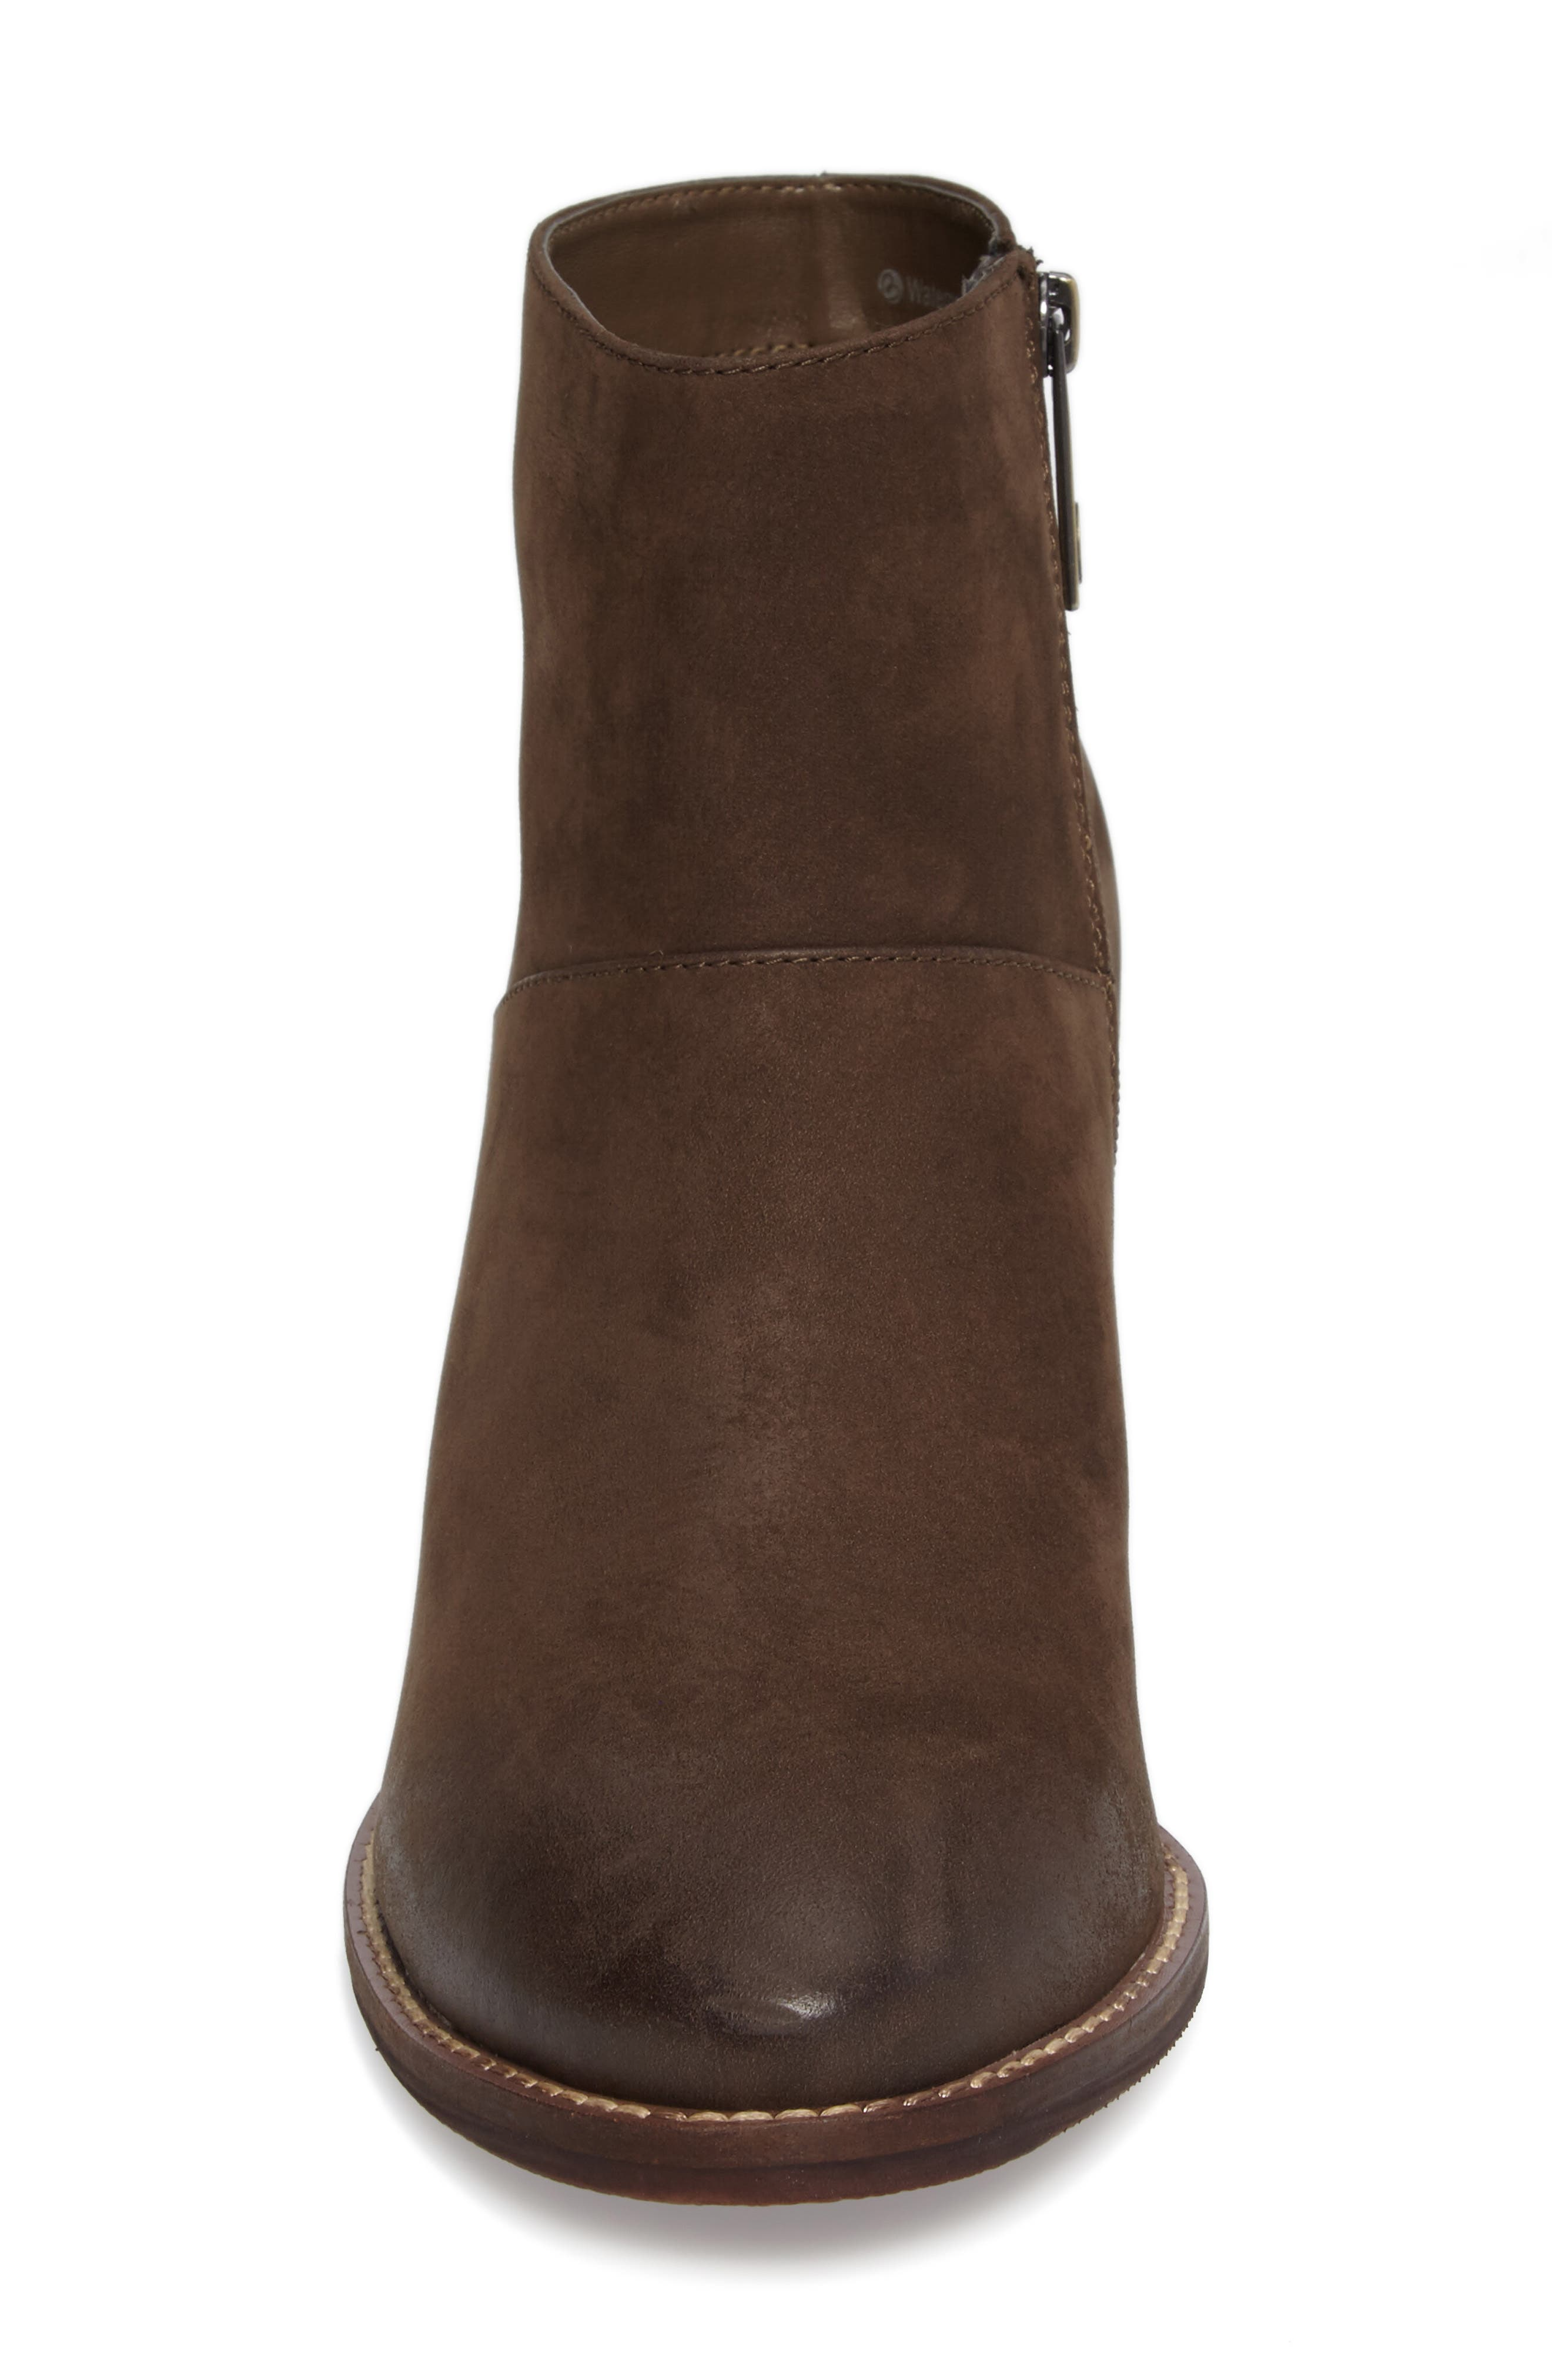 Nelli Waterproof Bootie,                             Alternate thumbnail 4, color,                             Taupe Nubuck Leather